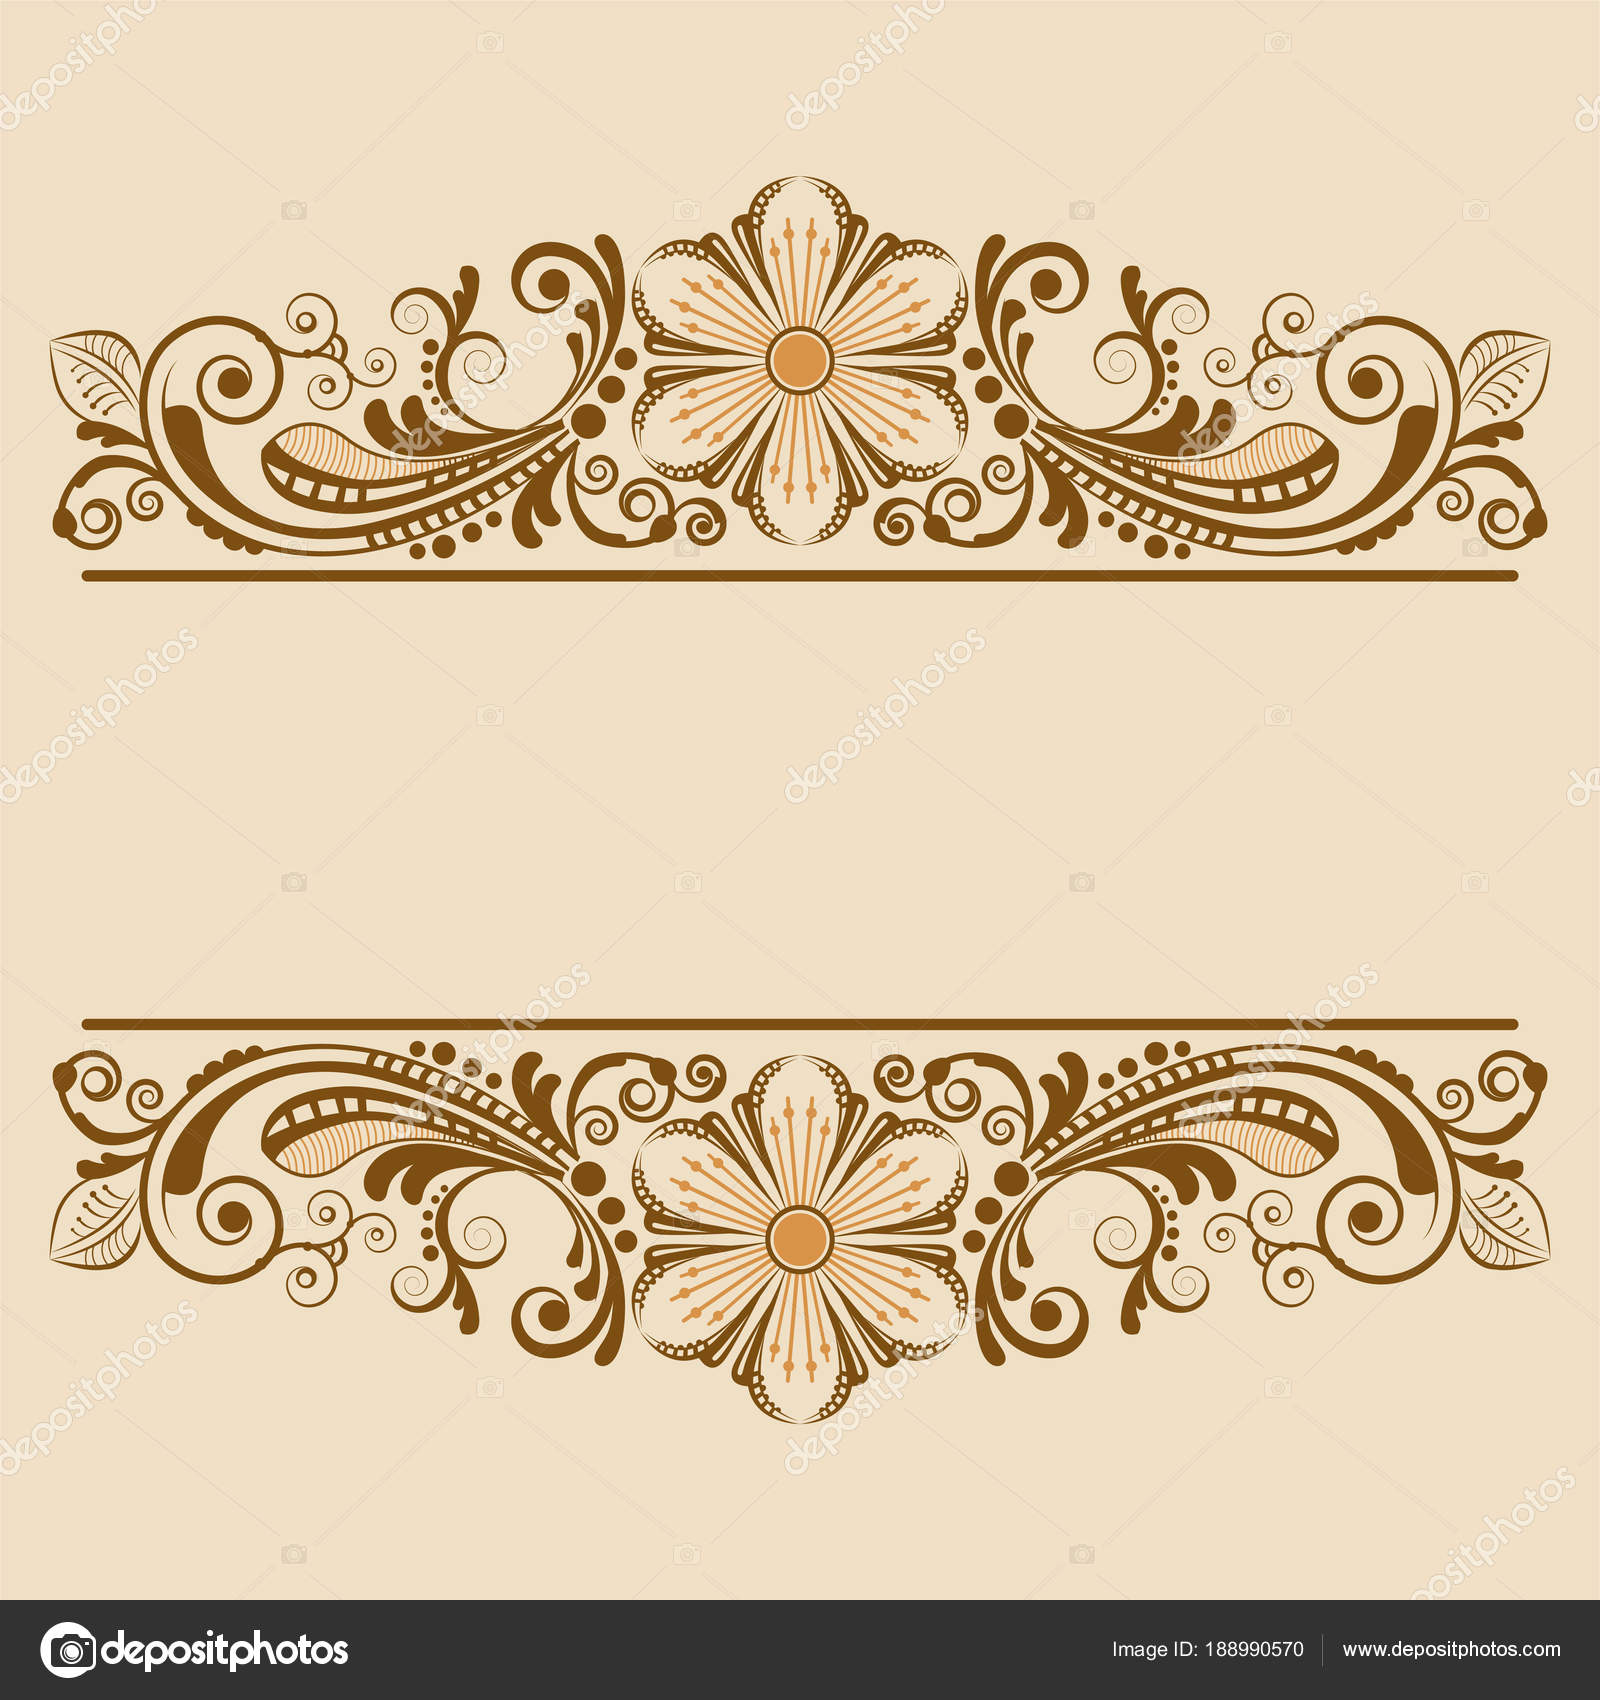 Vector Vintage Floral Background Decorative Flowers Design Stock